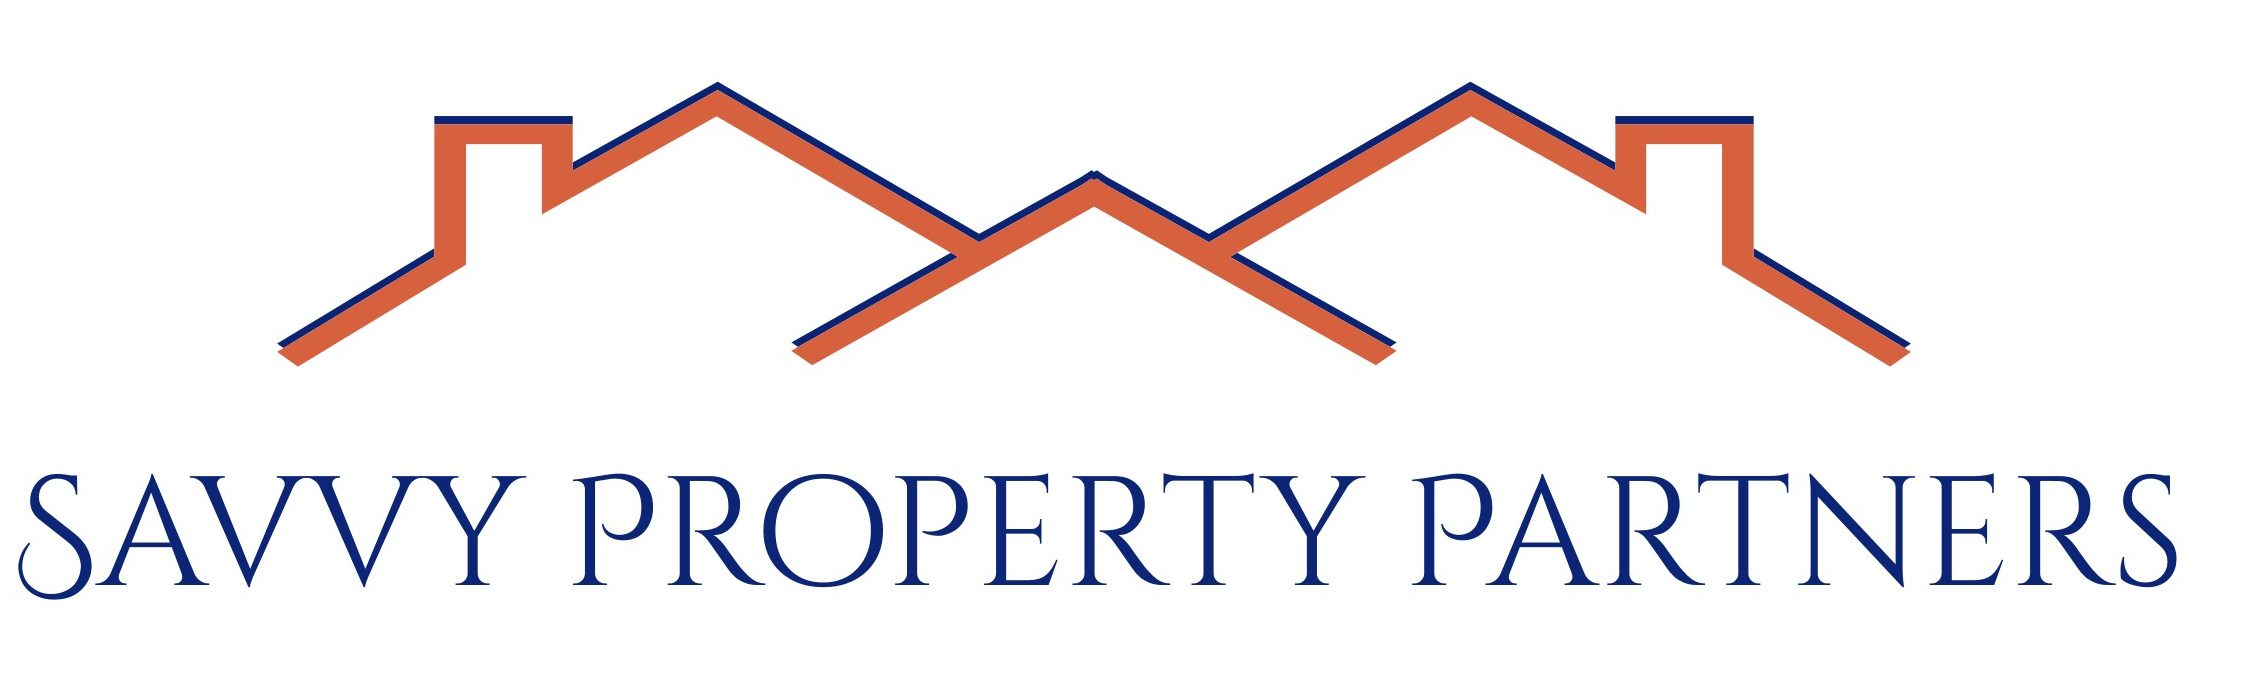 Savvy Property Partners